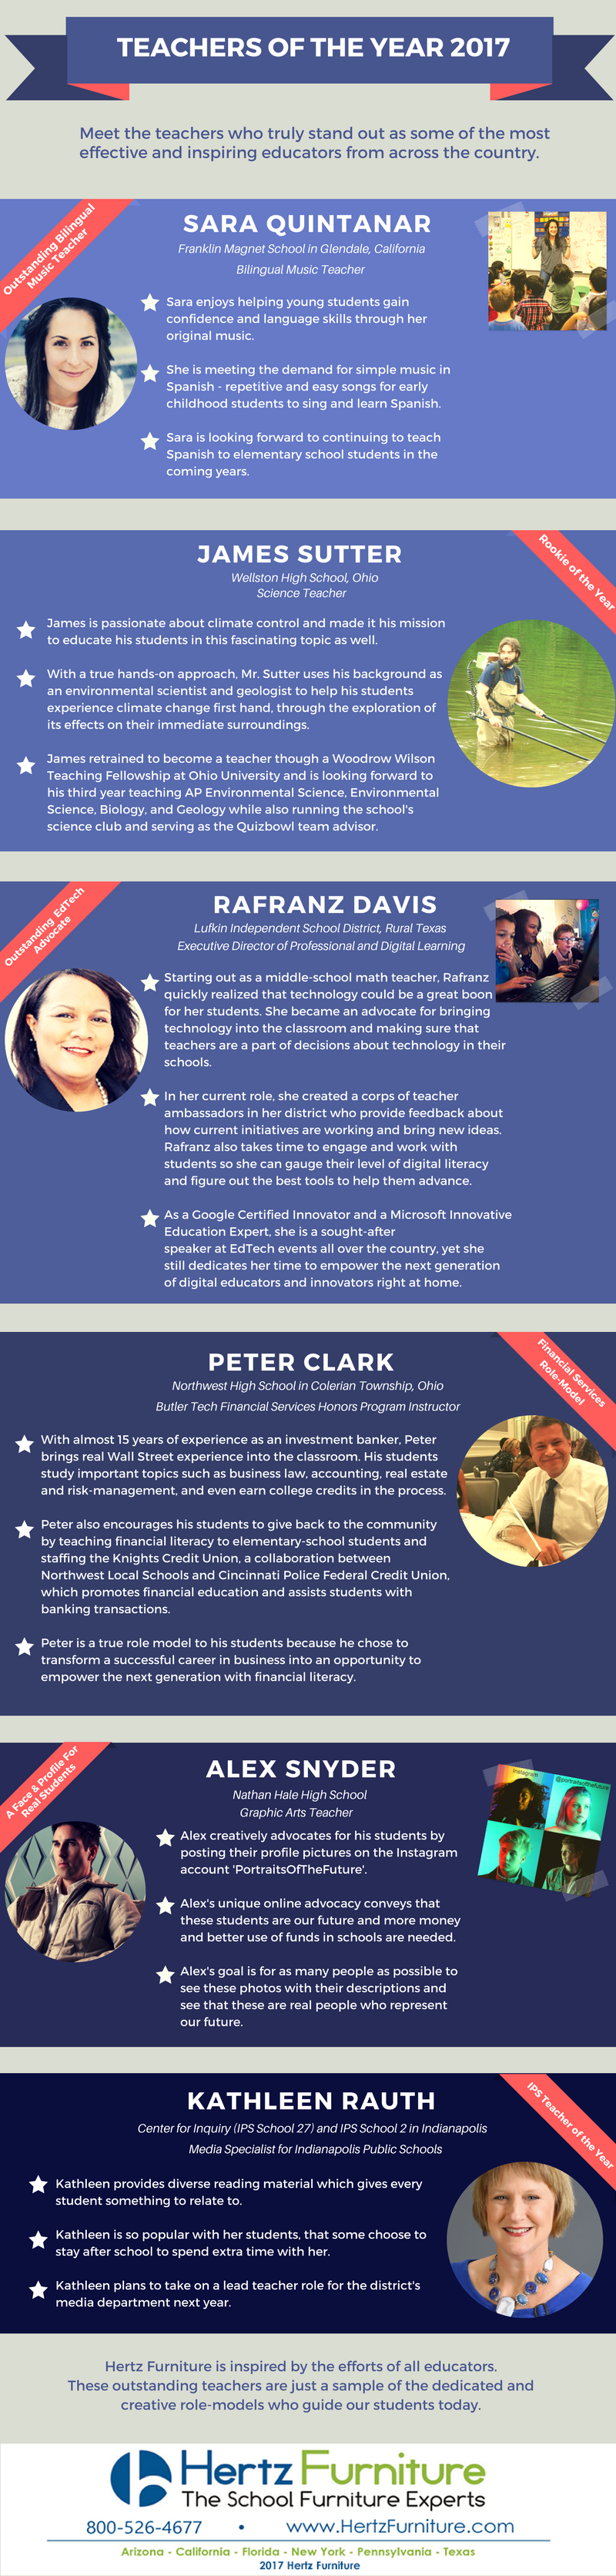 Infographic of Teachers of the Year 2017